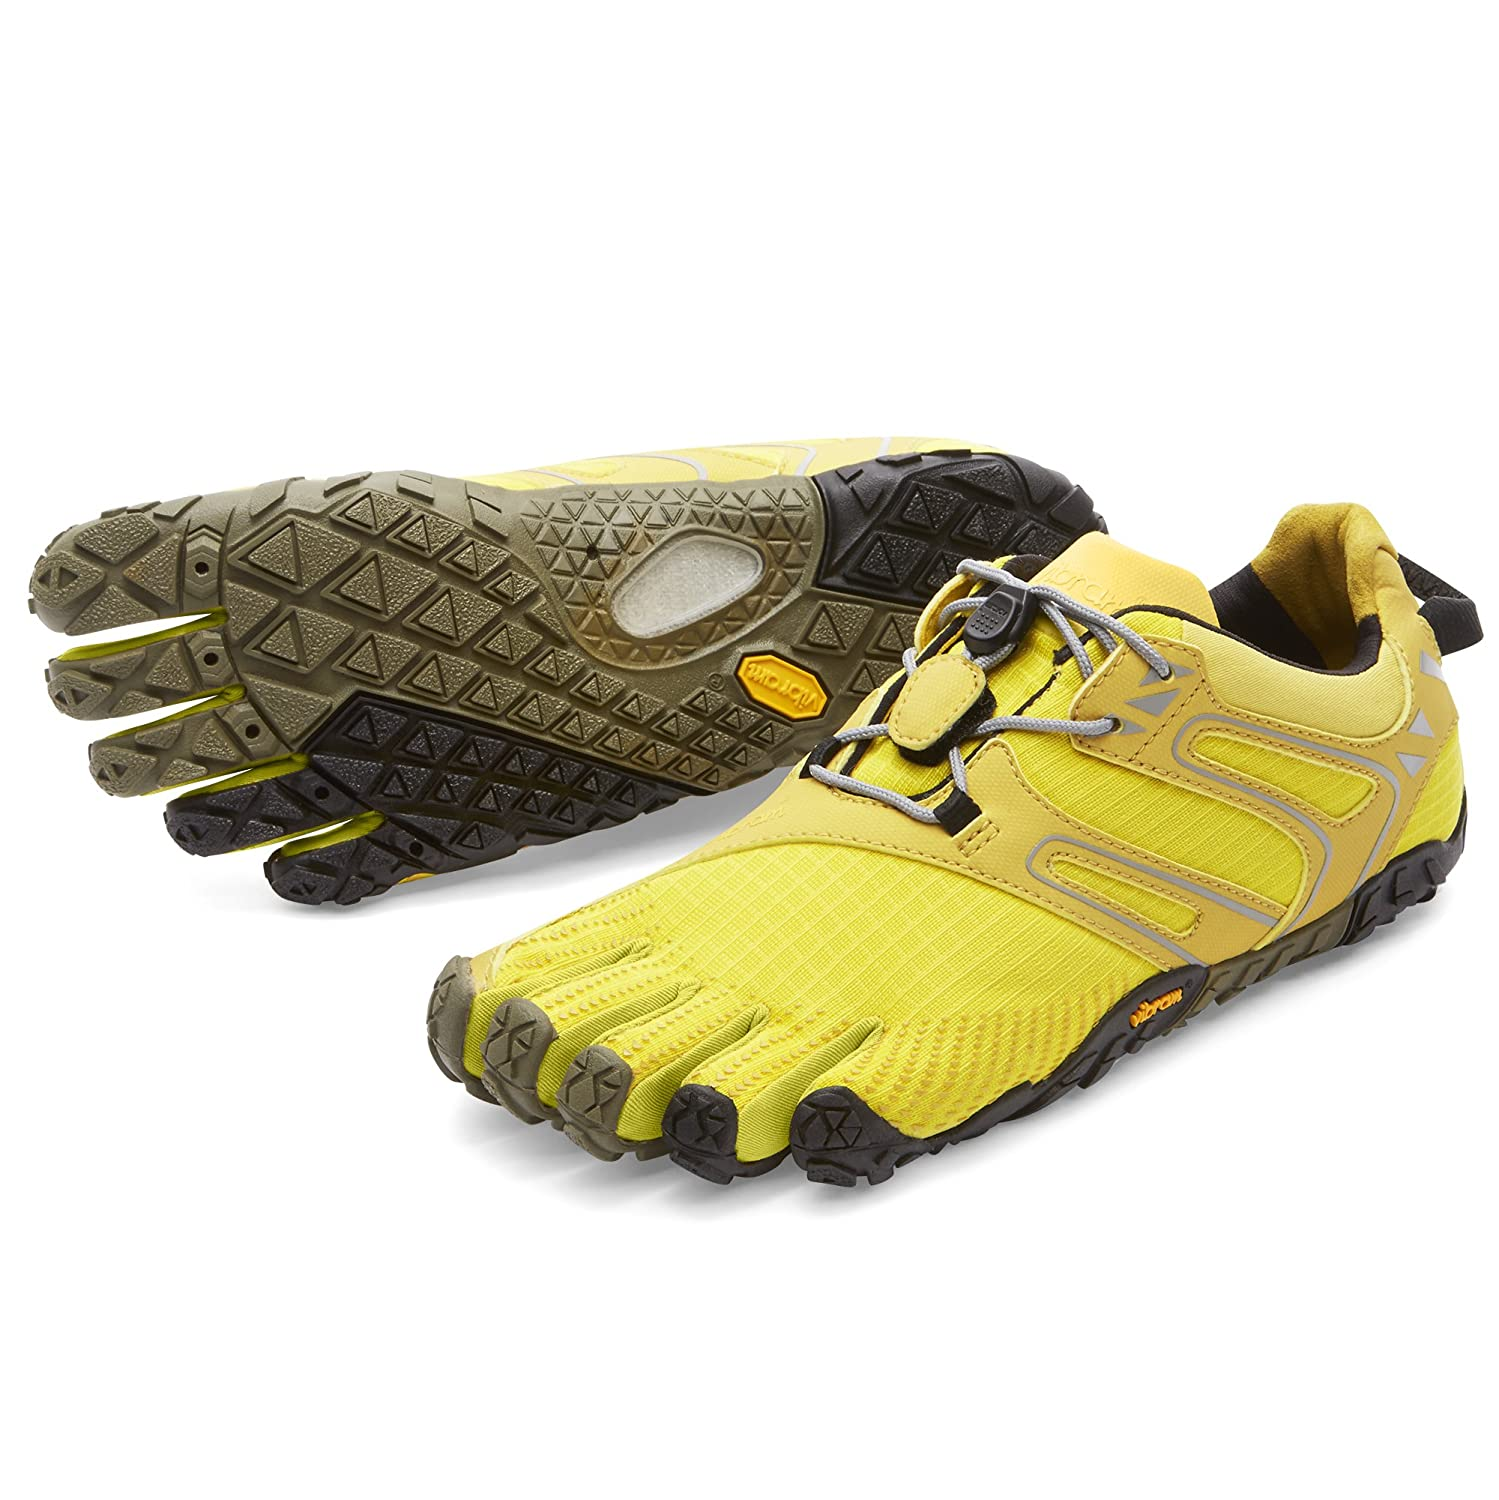 Vibram Women's V Trail Runner B01H8PU5L8 40 M EU / 8 B(M) US|Yellow/Black